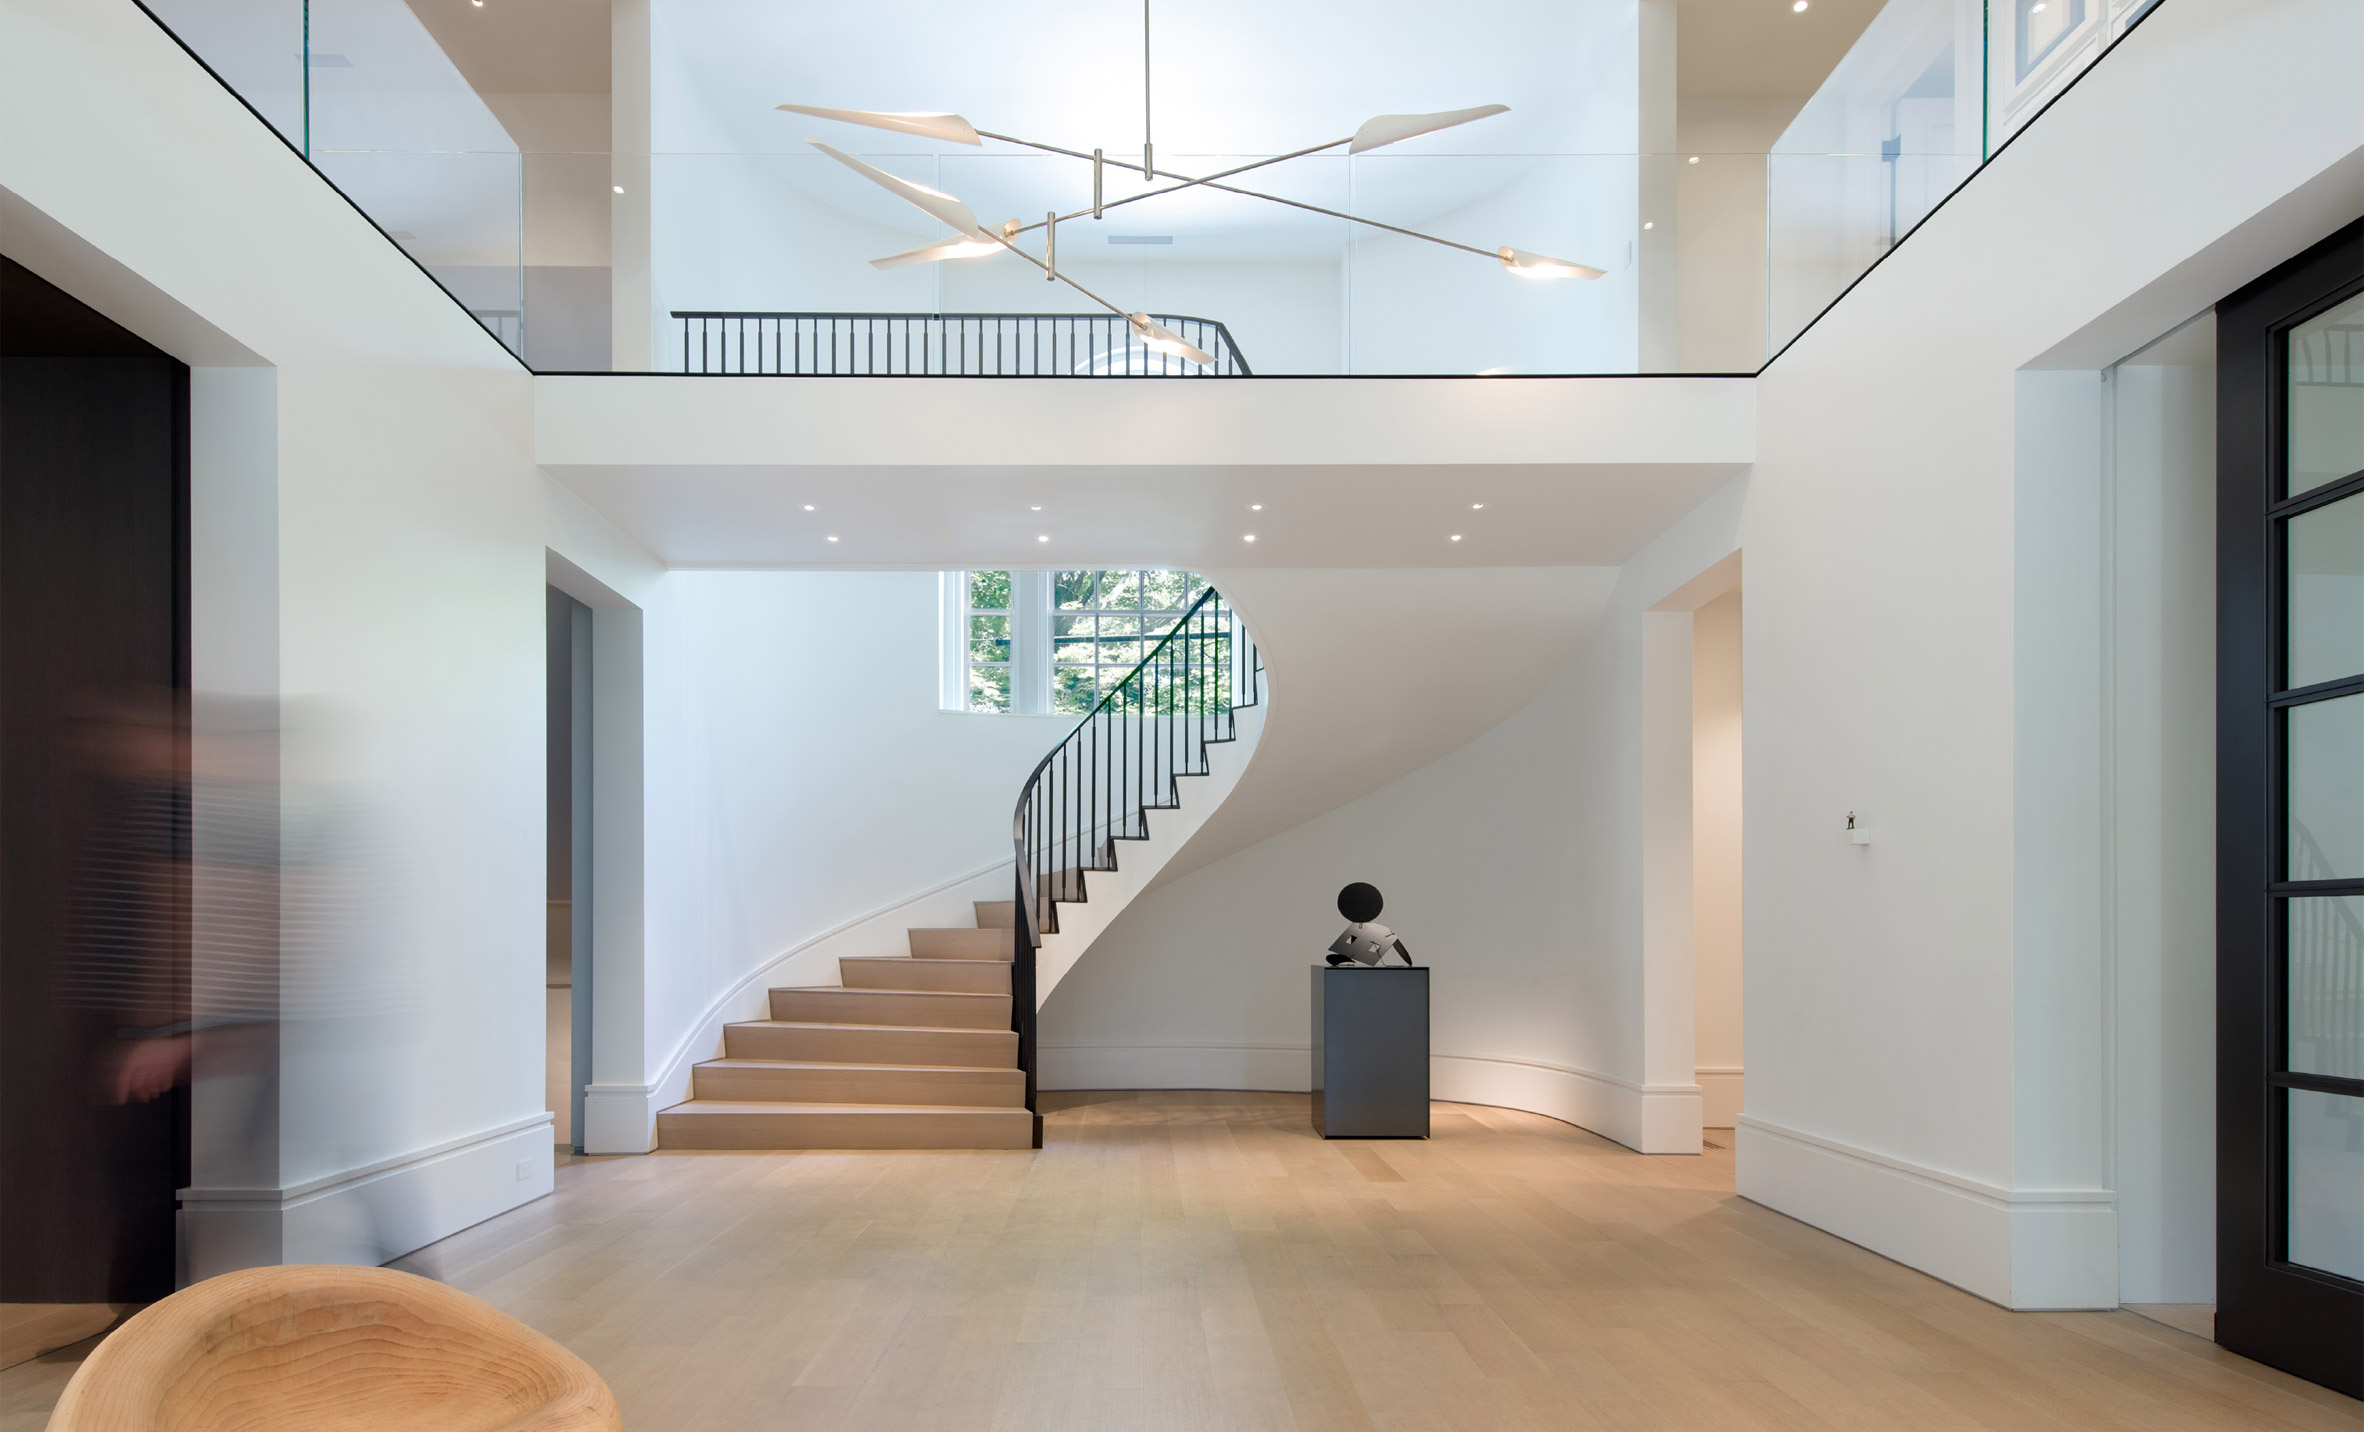 Stern McCaffery Architects converts entrance of old Massachusetts house into a gallery